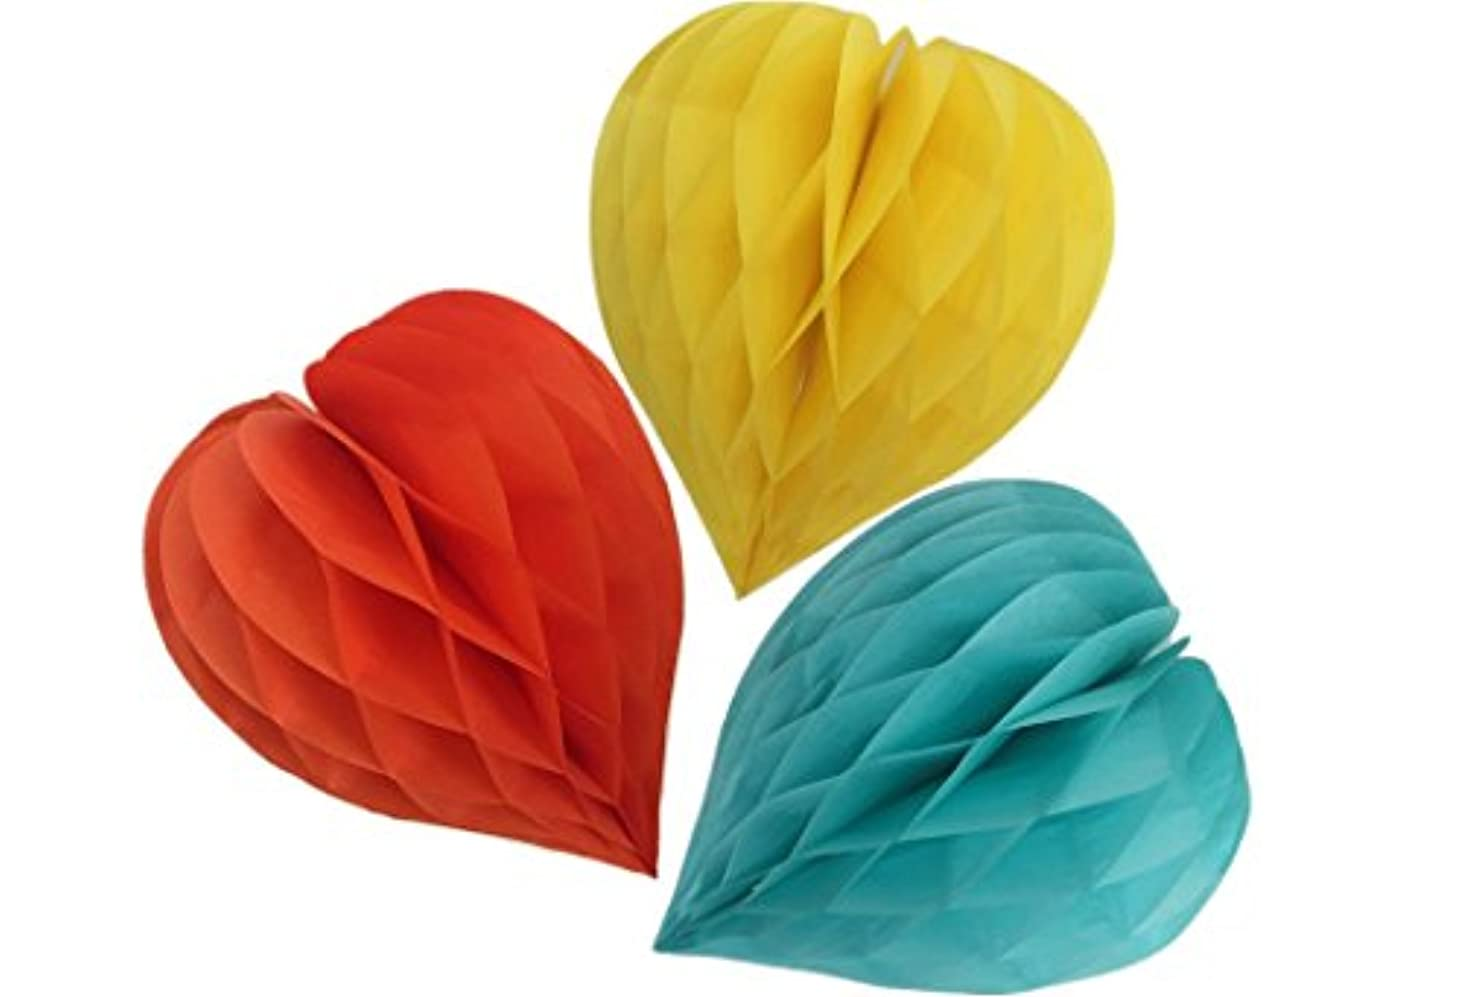 Matissa Pack of 3 Valentines Decoration Heart Shaped Paper Honeycomb Birthday Party Wedding Available in 11 Colours 3 Sizes (Orange + Yellow + Mint Green, 10